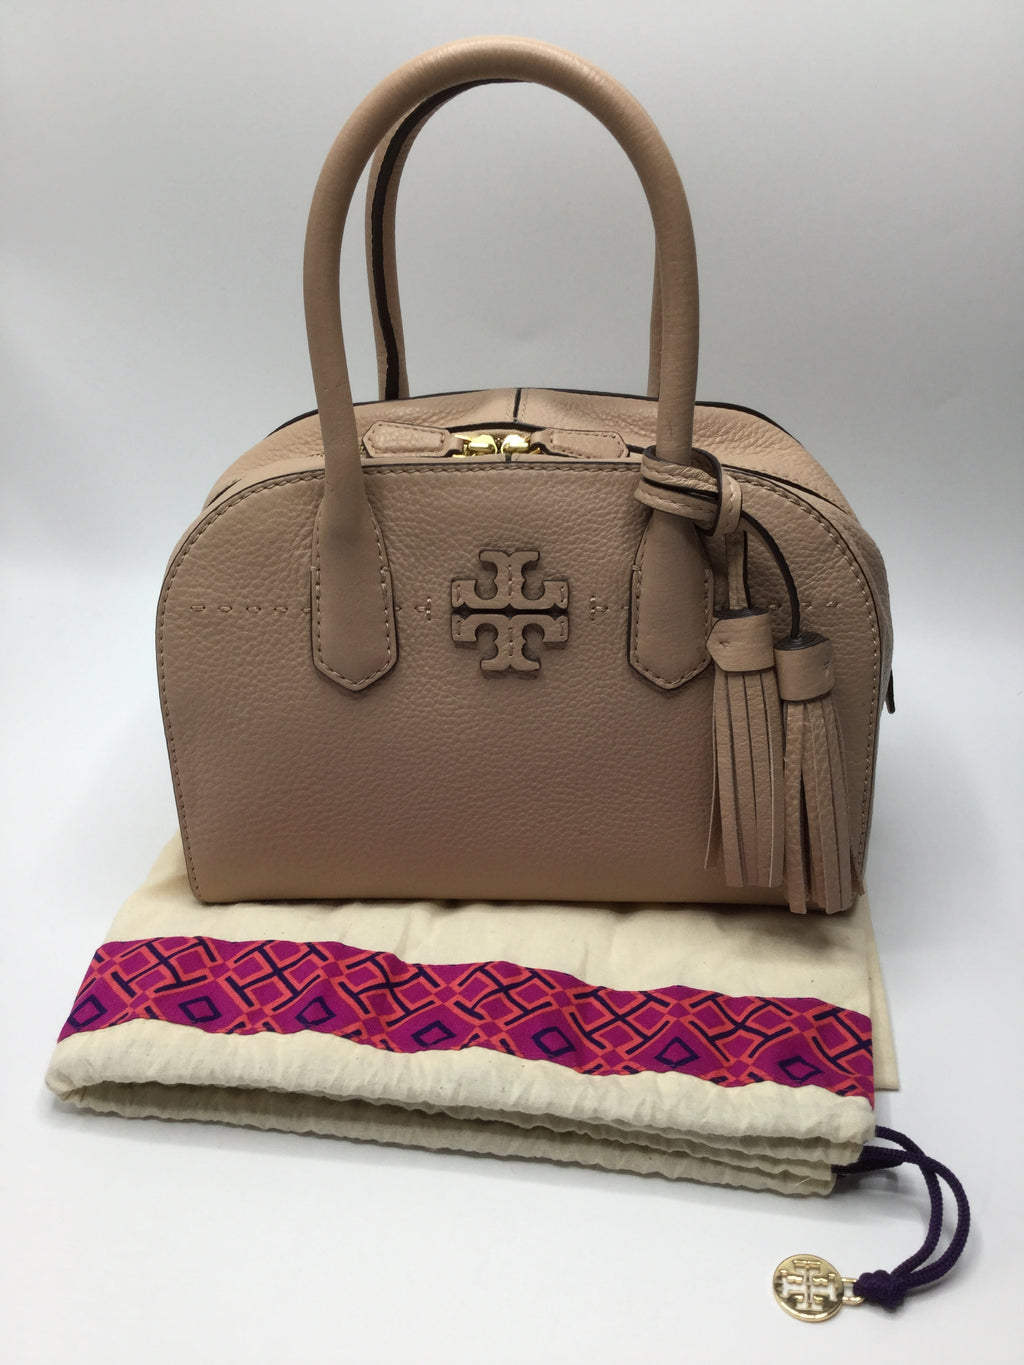 Tory Burch Crossbody Size:medium